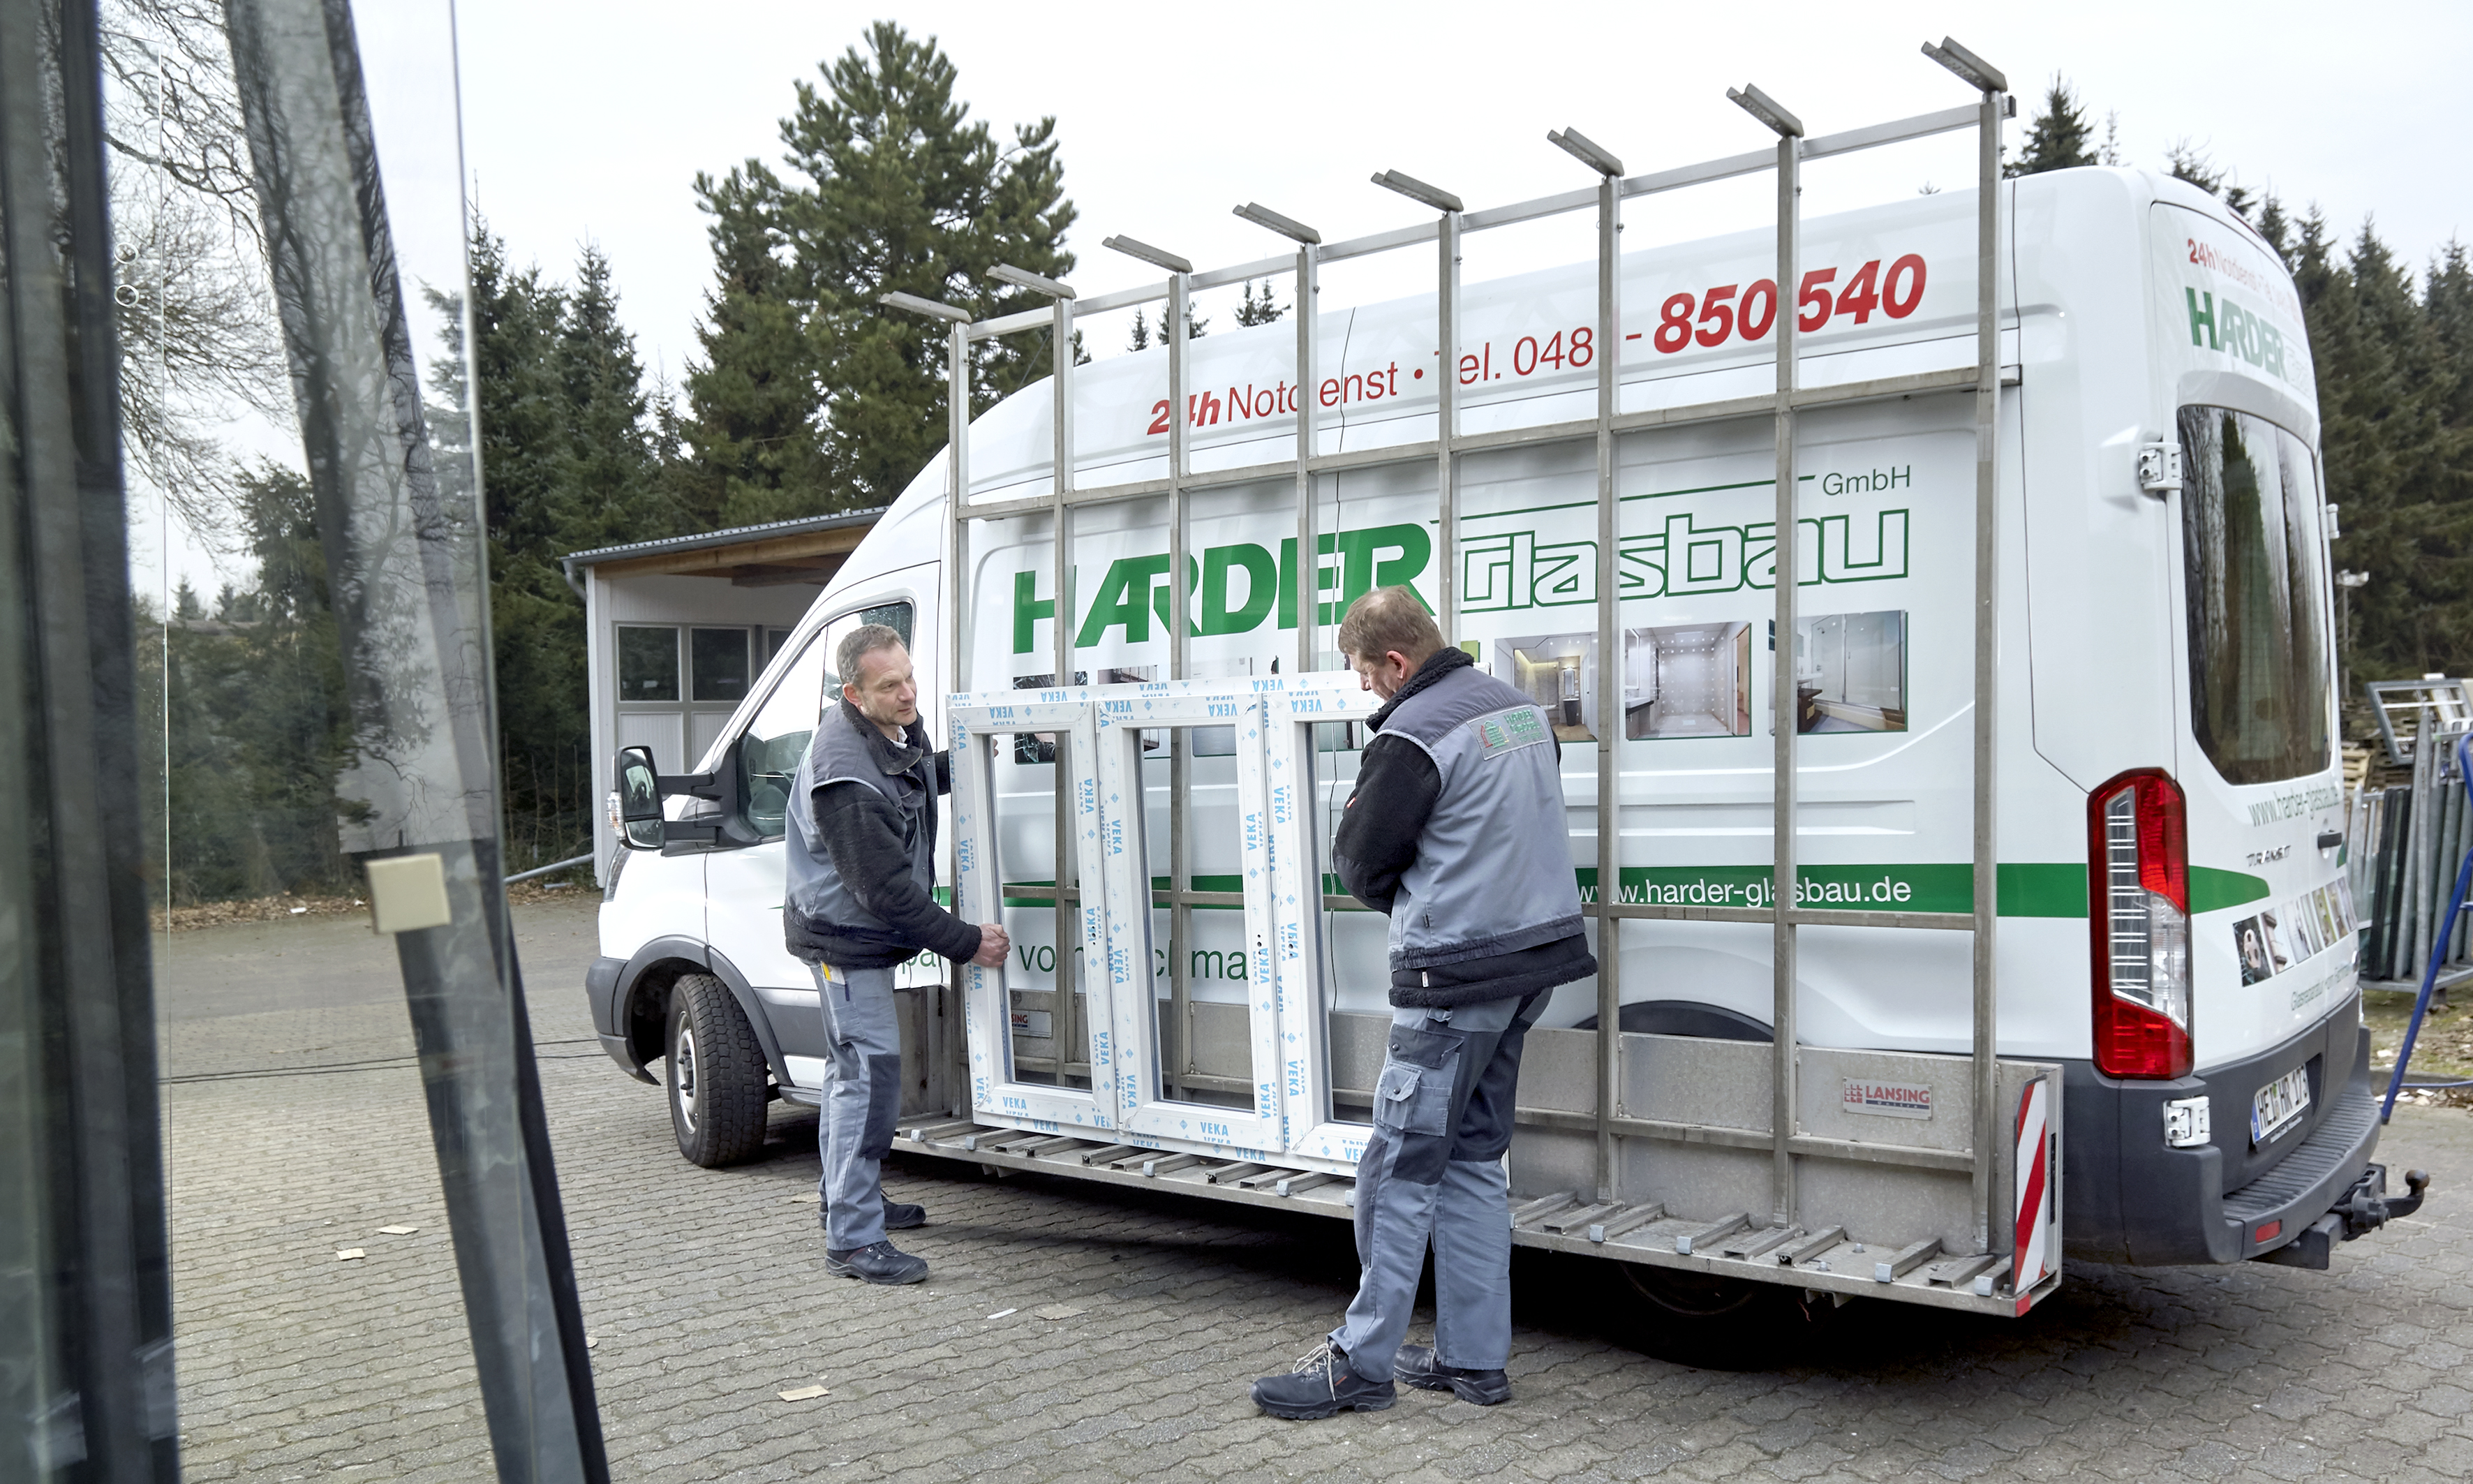 HARDER Glasbau